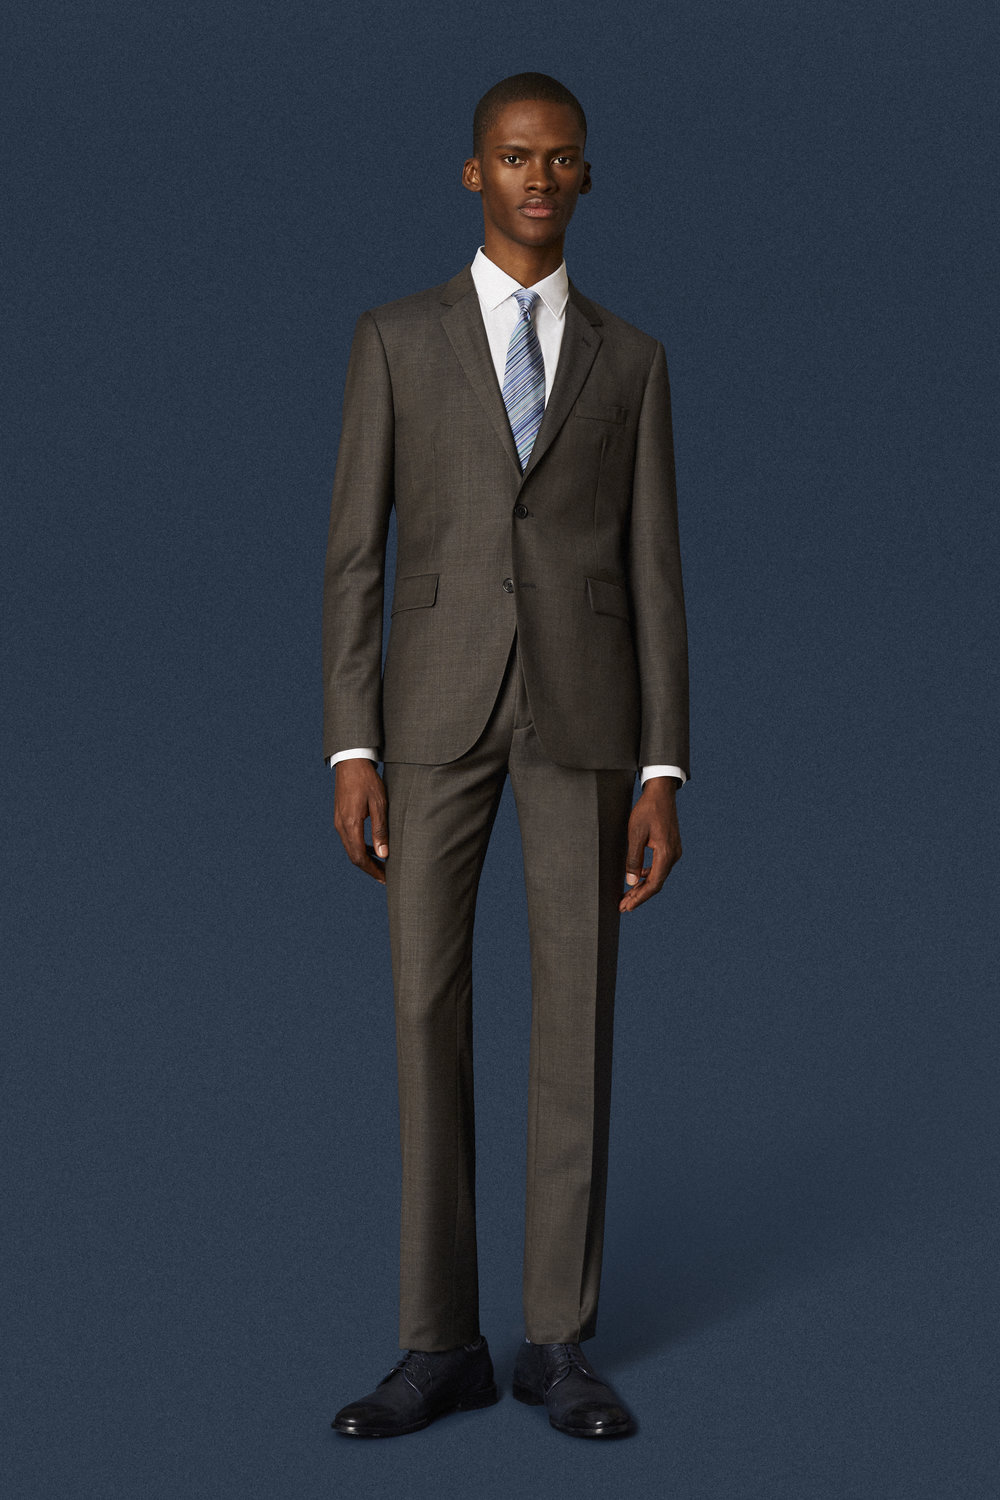 SUIT GUIDE LOOK 1 FRONT.jpg